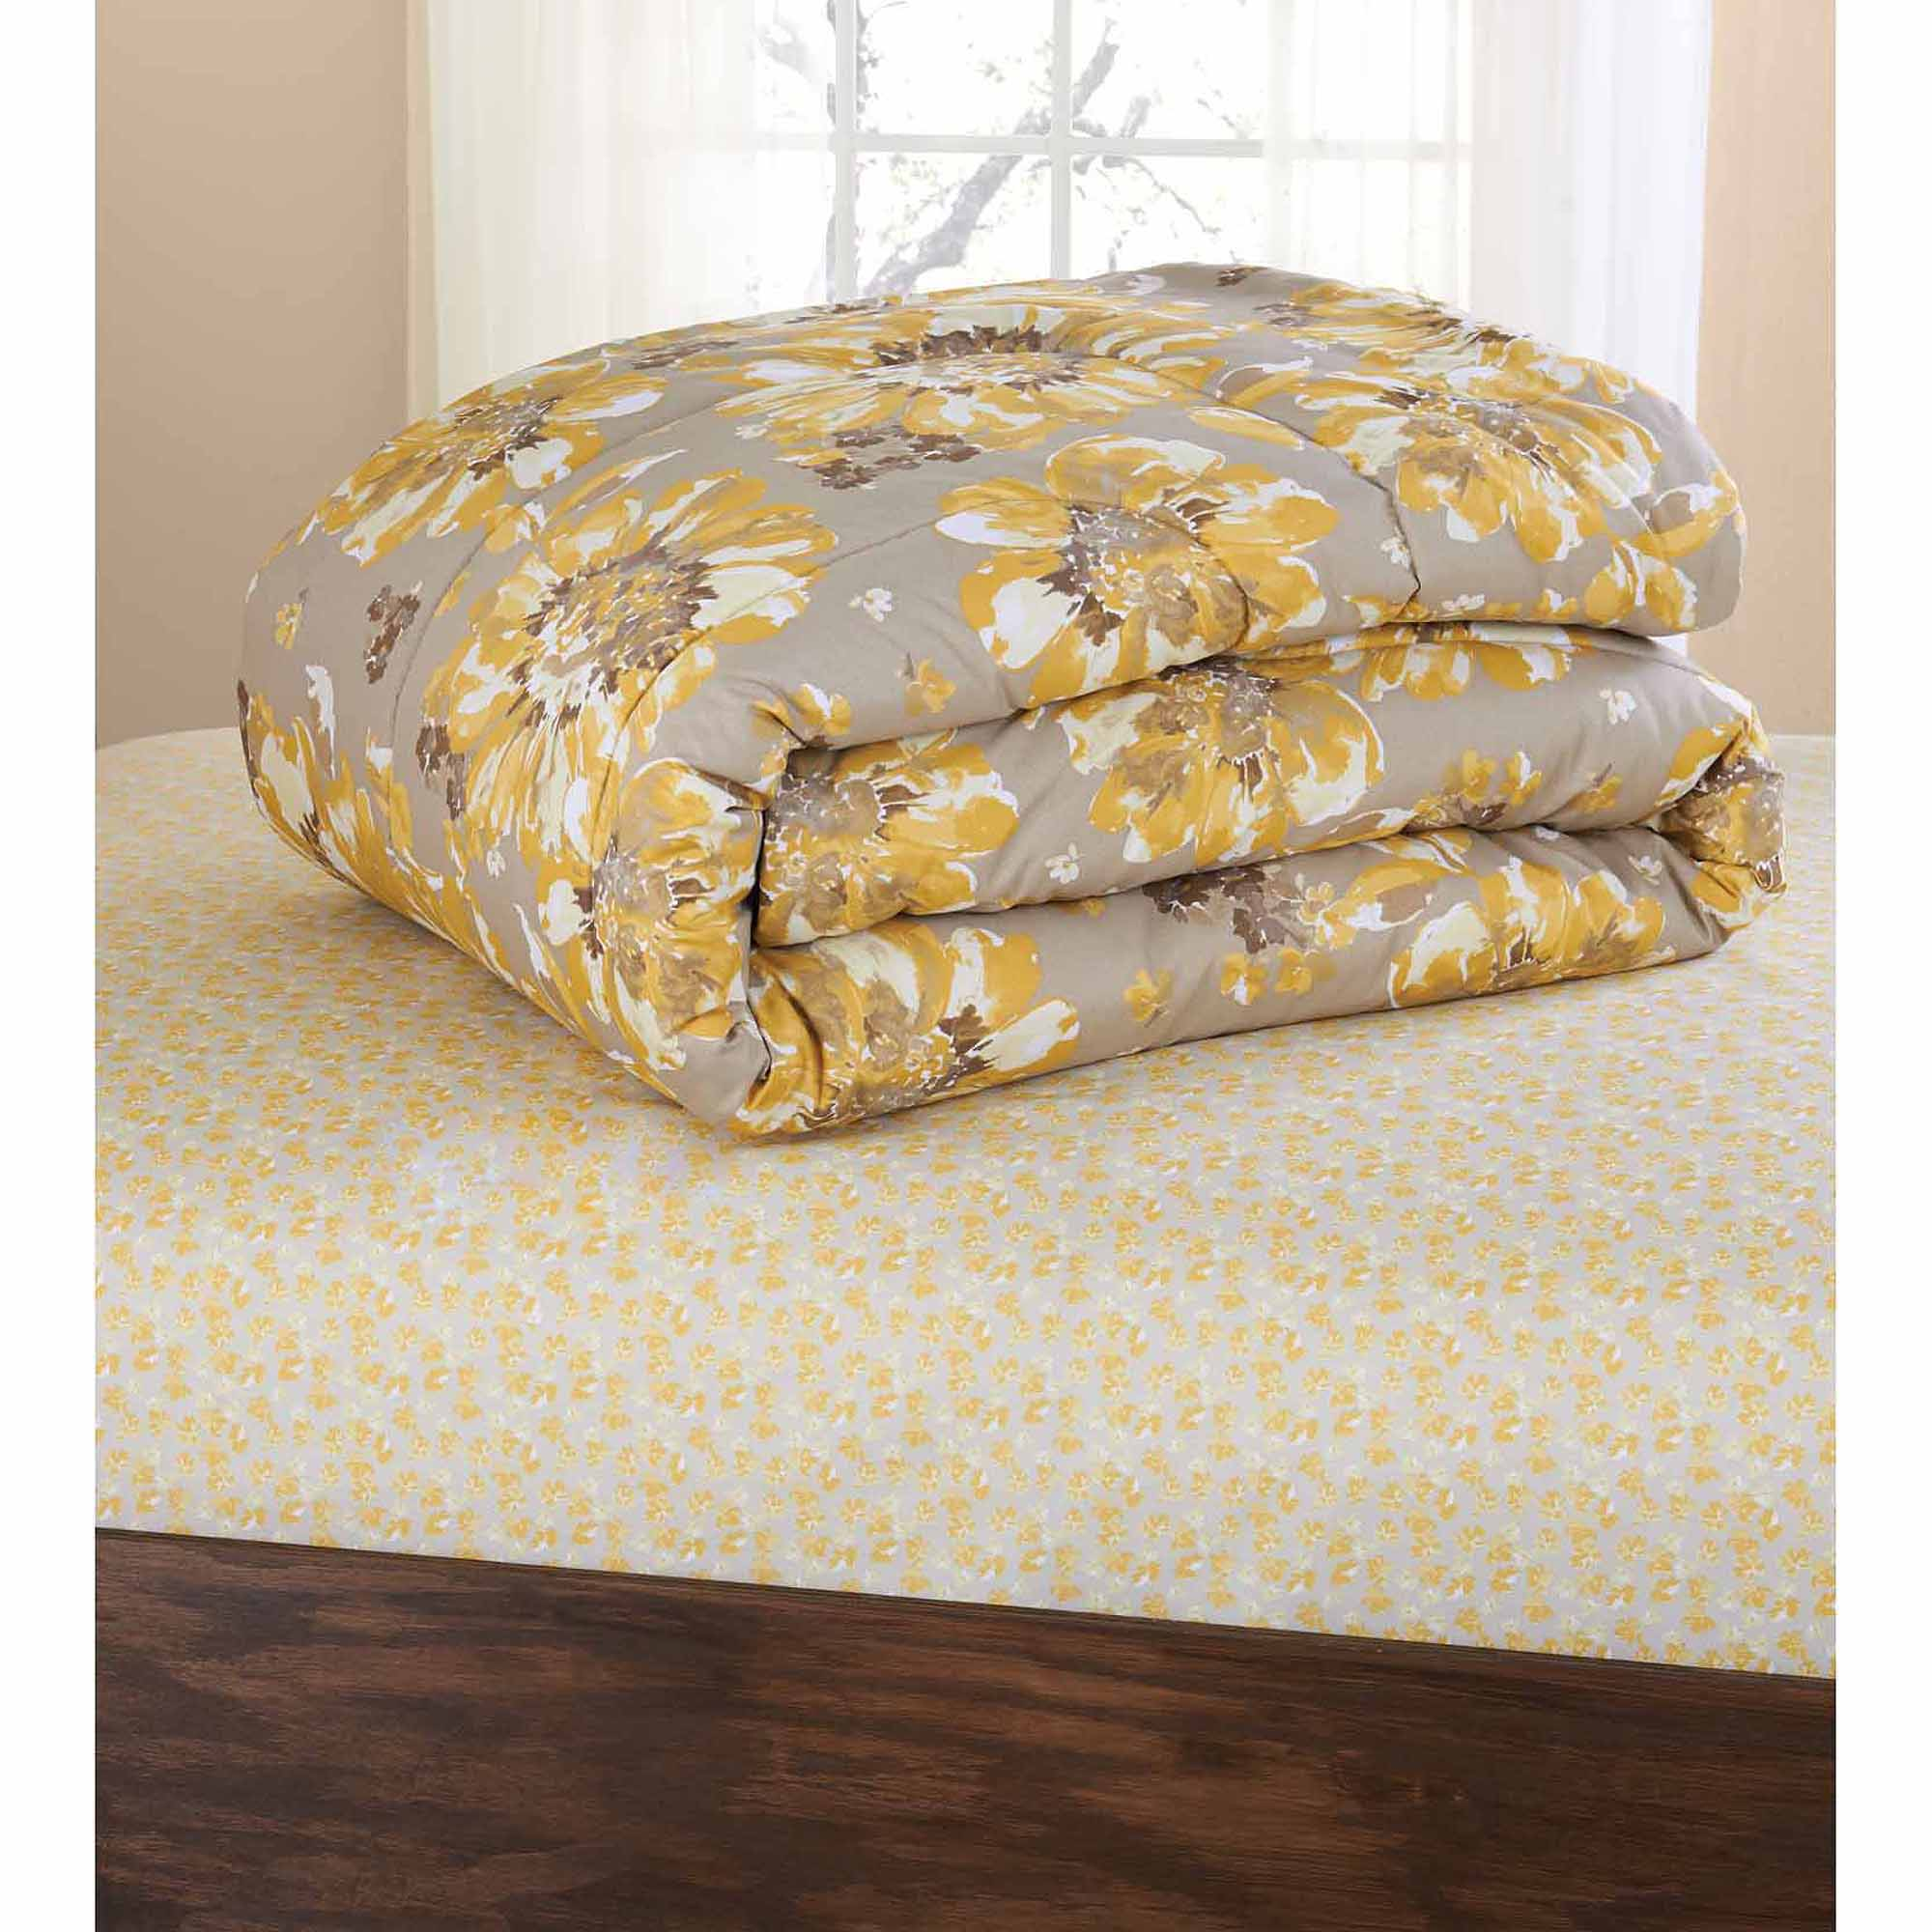 Mainstays Floral Bed in a Bag Coordinated Bedding Set